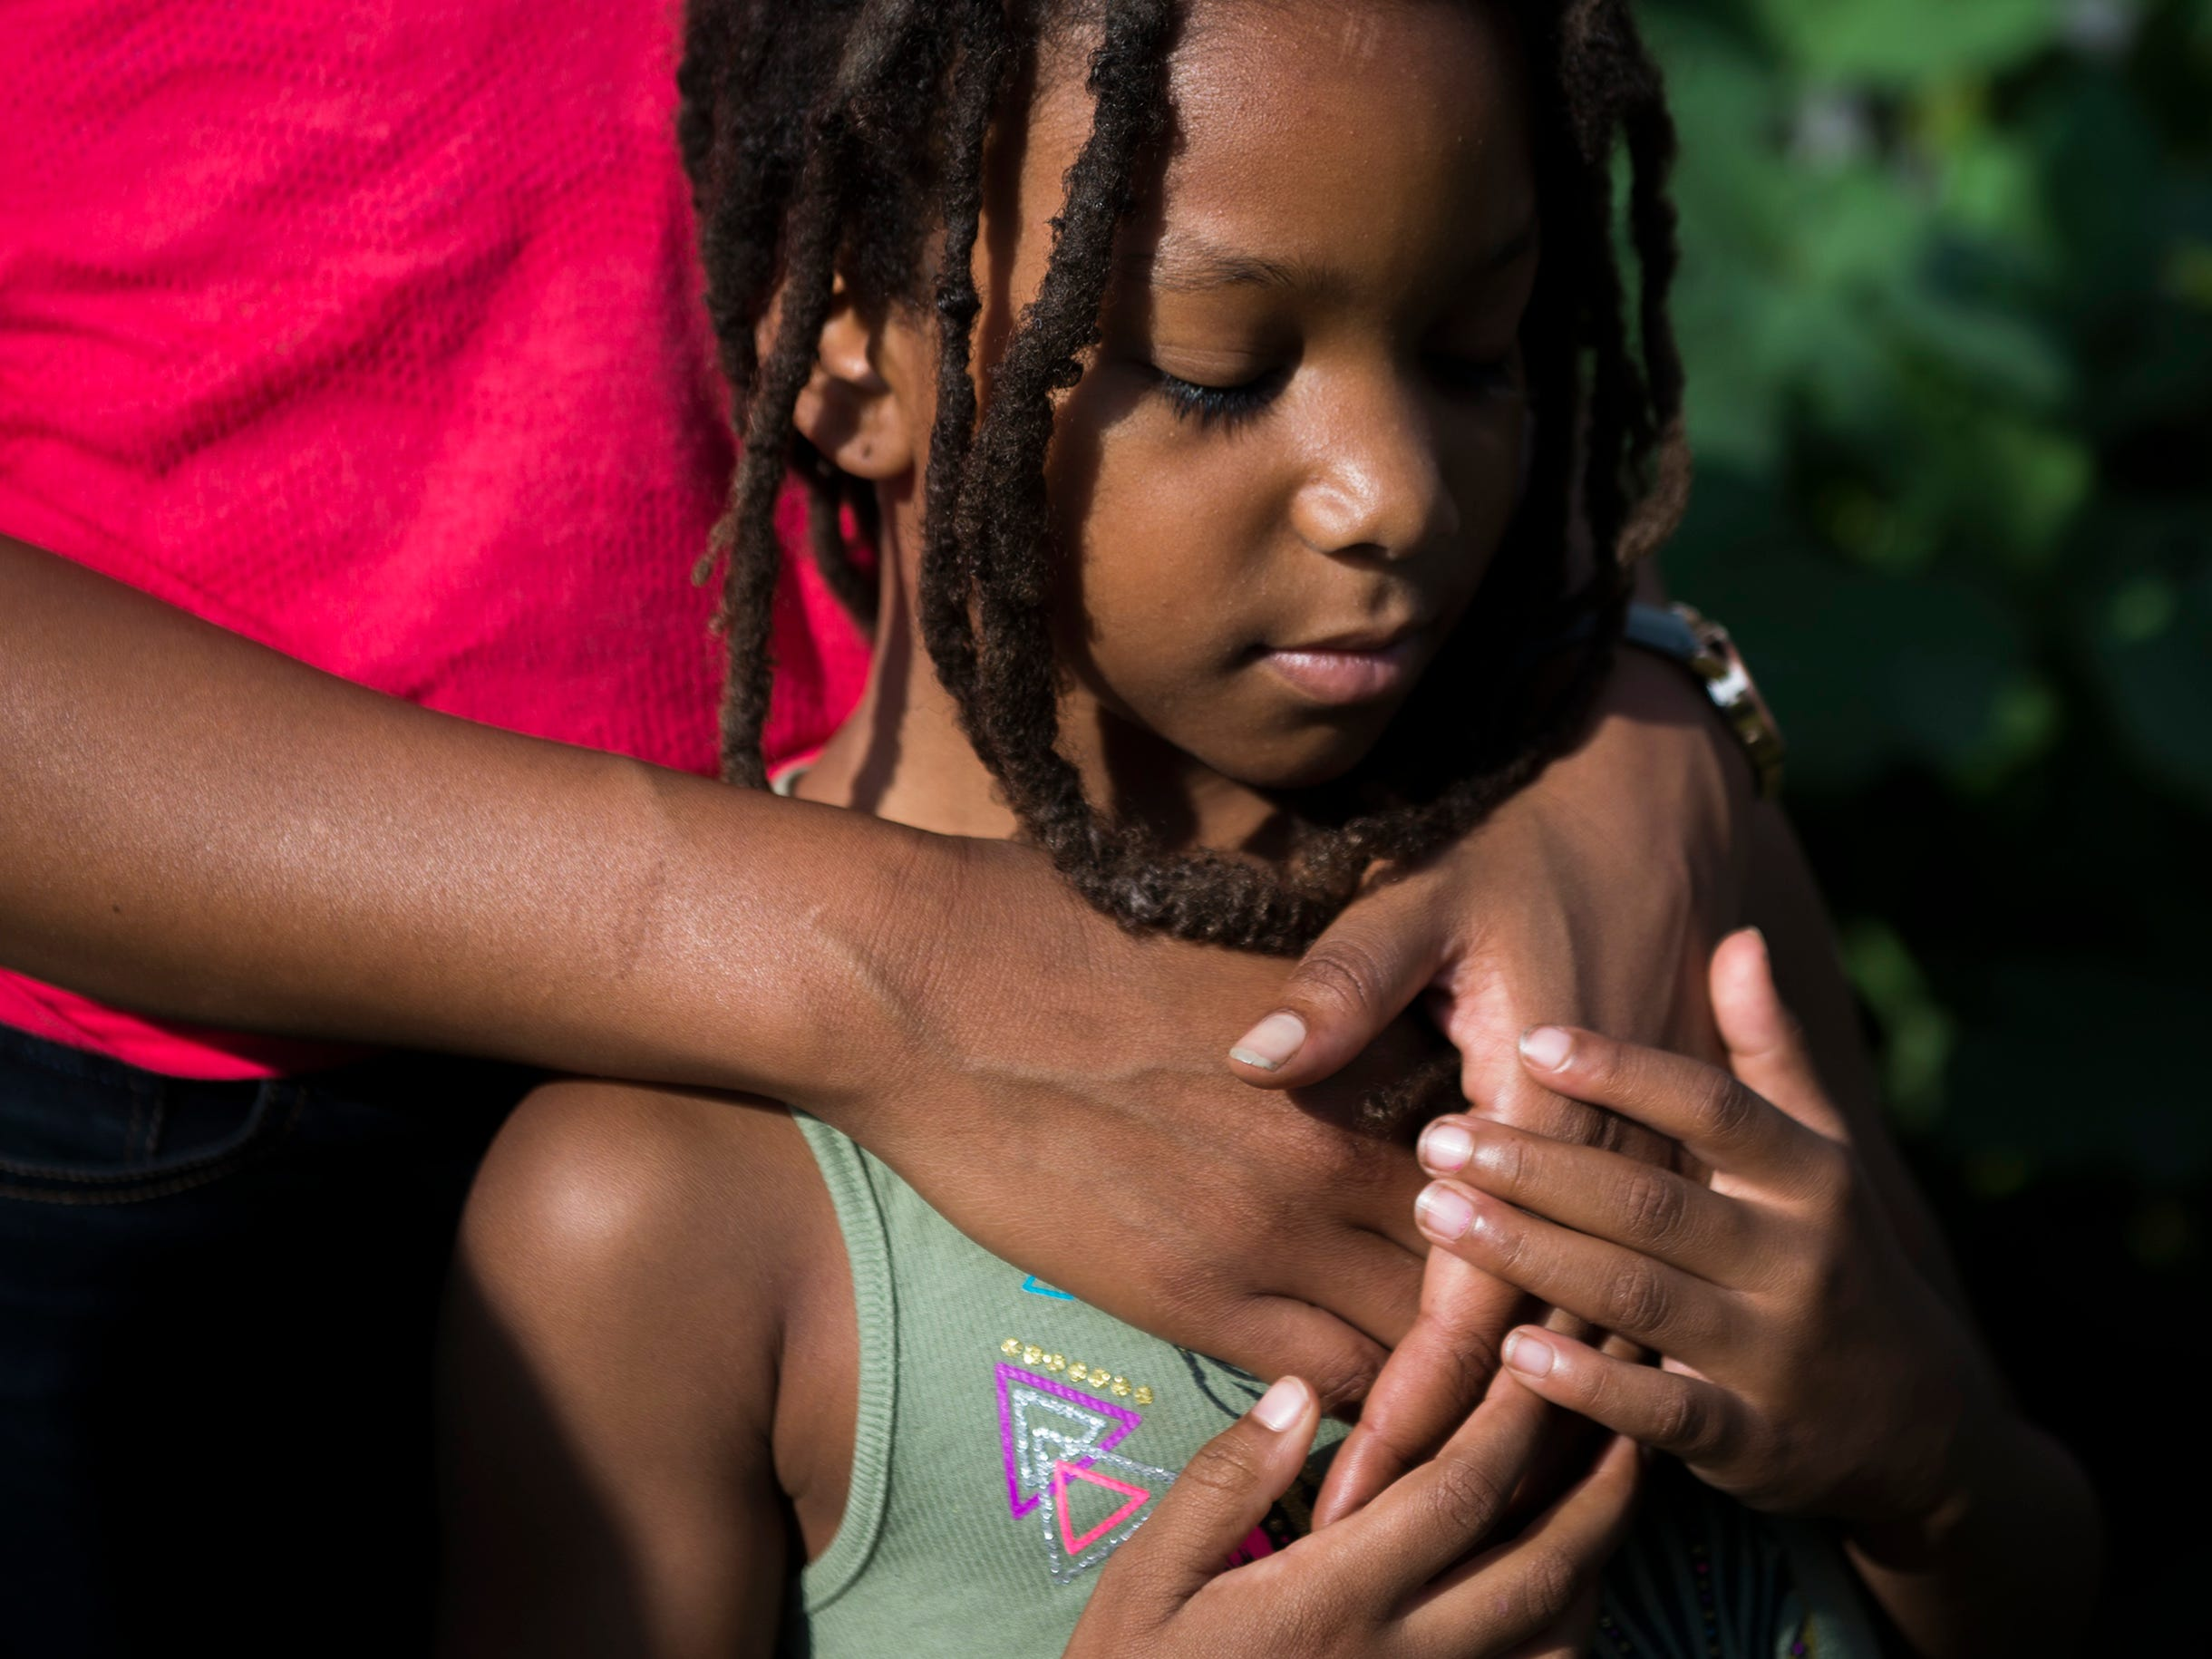 Dr. Cynthia Hall embraces her daughter Araminta, 7, on their farm Thursday, Aug. 23, 2018 at Free Haven Farms in Lawnside, N.J. Developed by abolitionists in the 1840s, the town was an Underground Railroad hub and remains a tight-knit, middle-class African-American community. ÒWe made that our philosophy,Ó she says. ÒBringing it full circle, and this location being a free haven for folks in terms of reeducating ourselves about health, nutrition and lifestyle.Ó